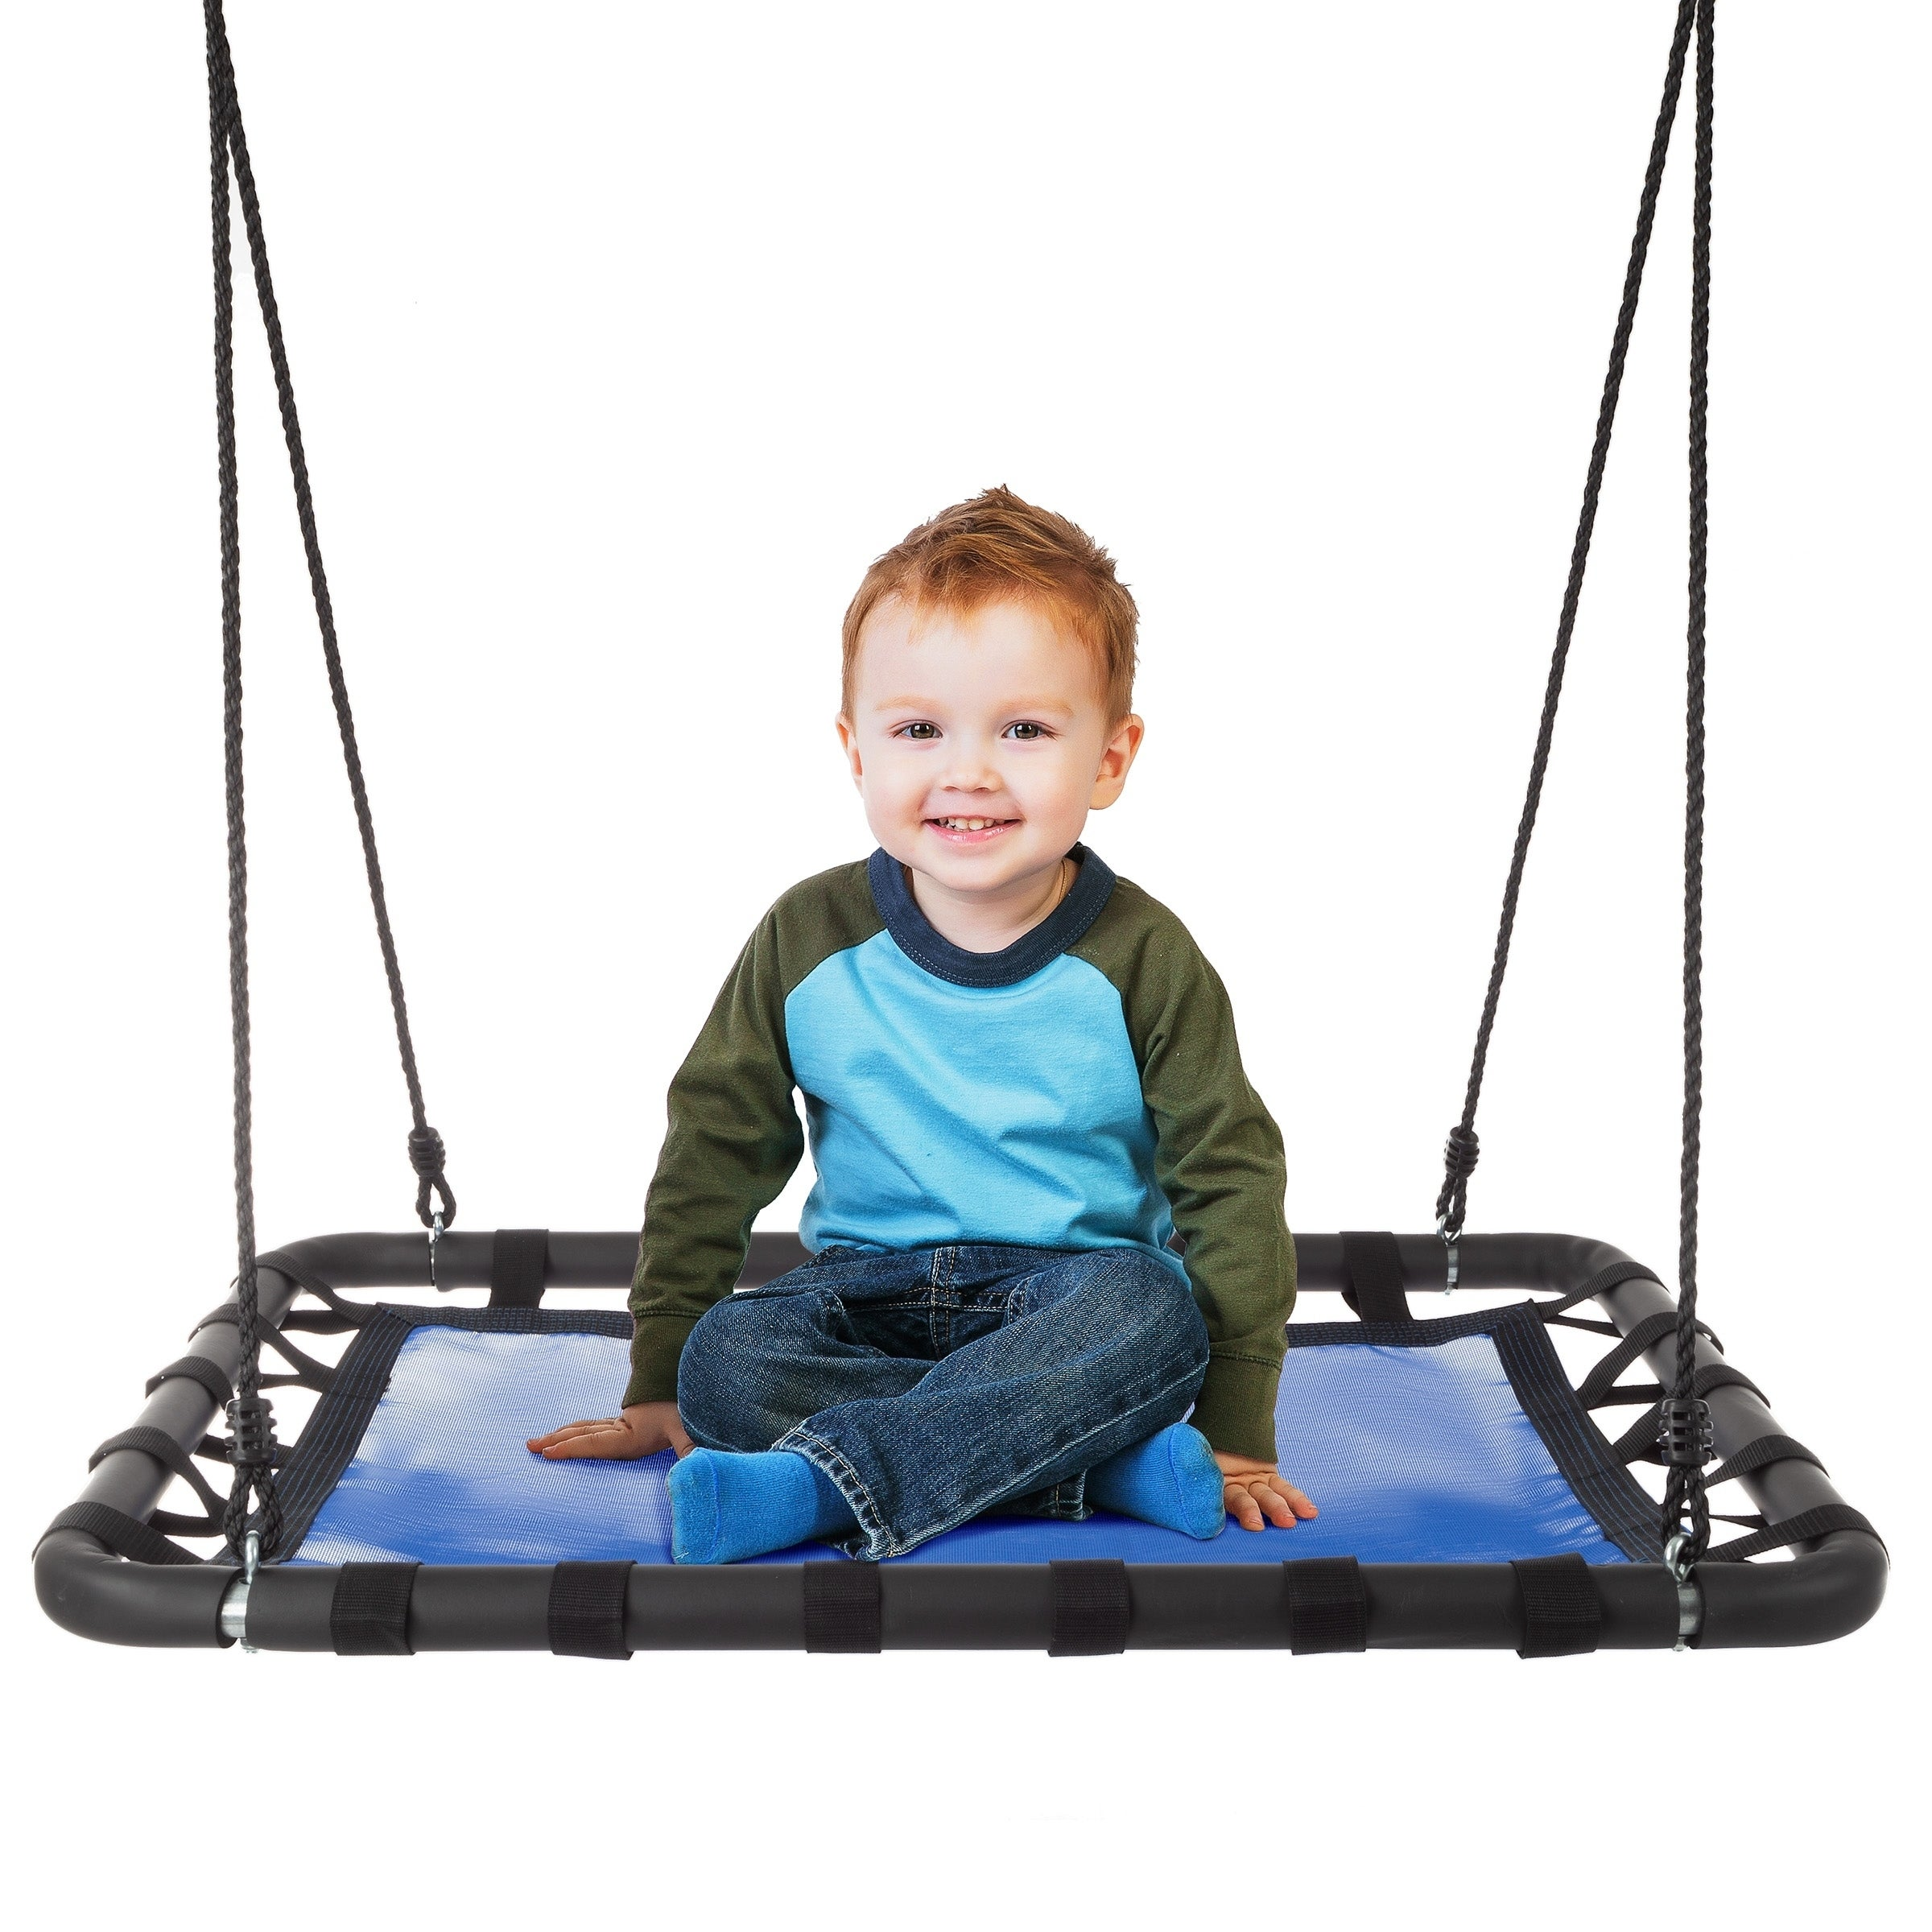 Platform Swing- 40″x30″ Hanging Outdoor Tree or Playground Rectangle Bench Swing with Adjustable Rope by Hey! Play! – 40×30